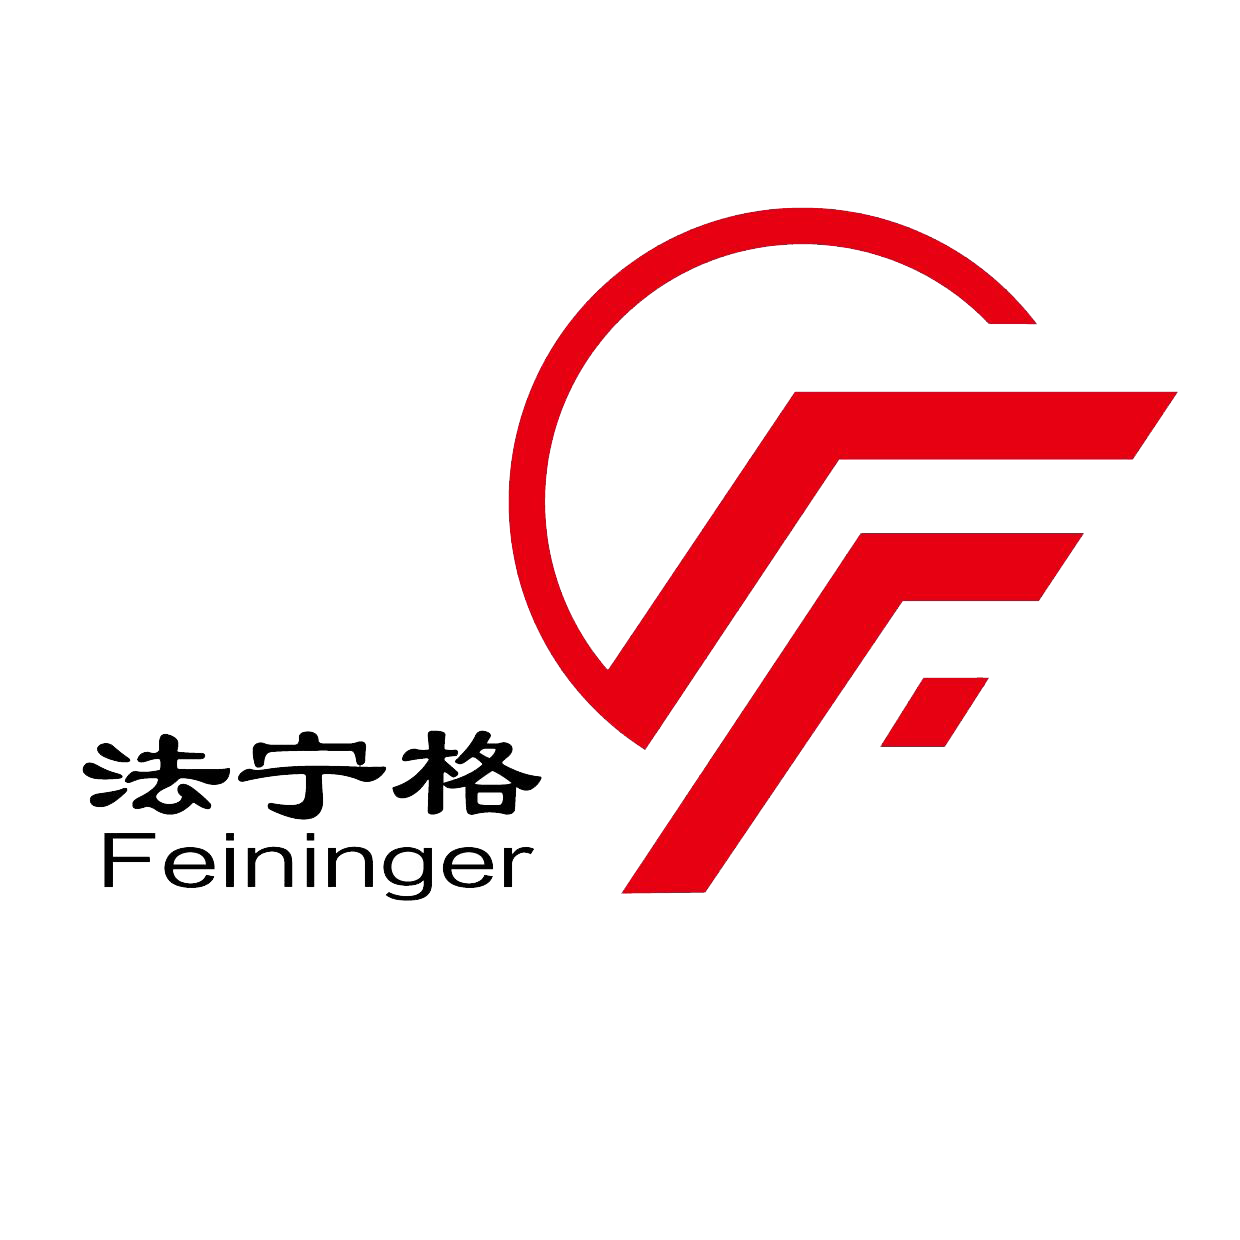 Feininger (Nanjing) Energy Saving Technology Co.,Ltd